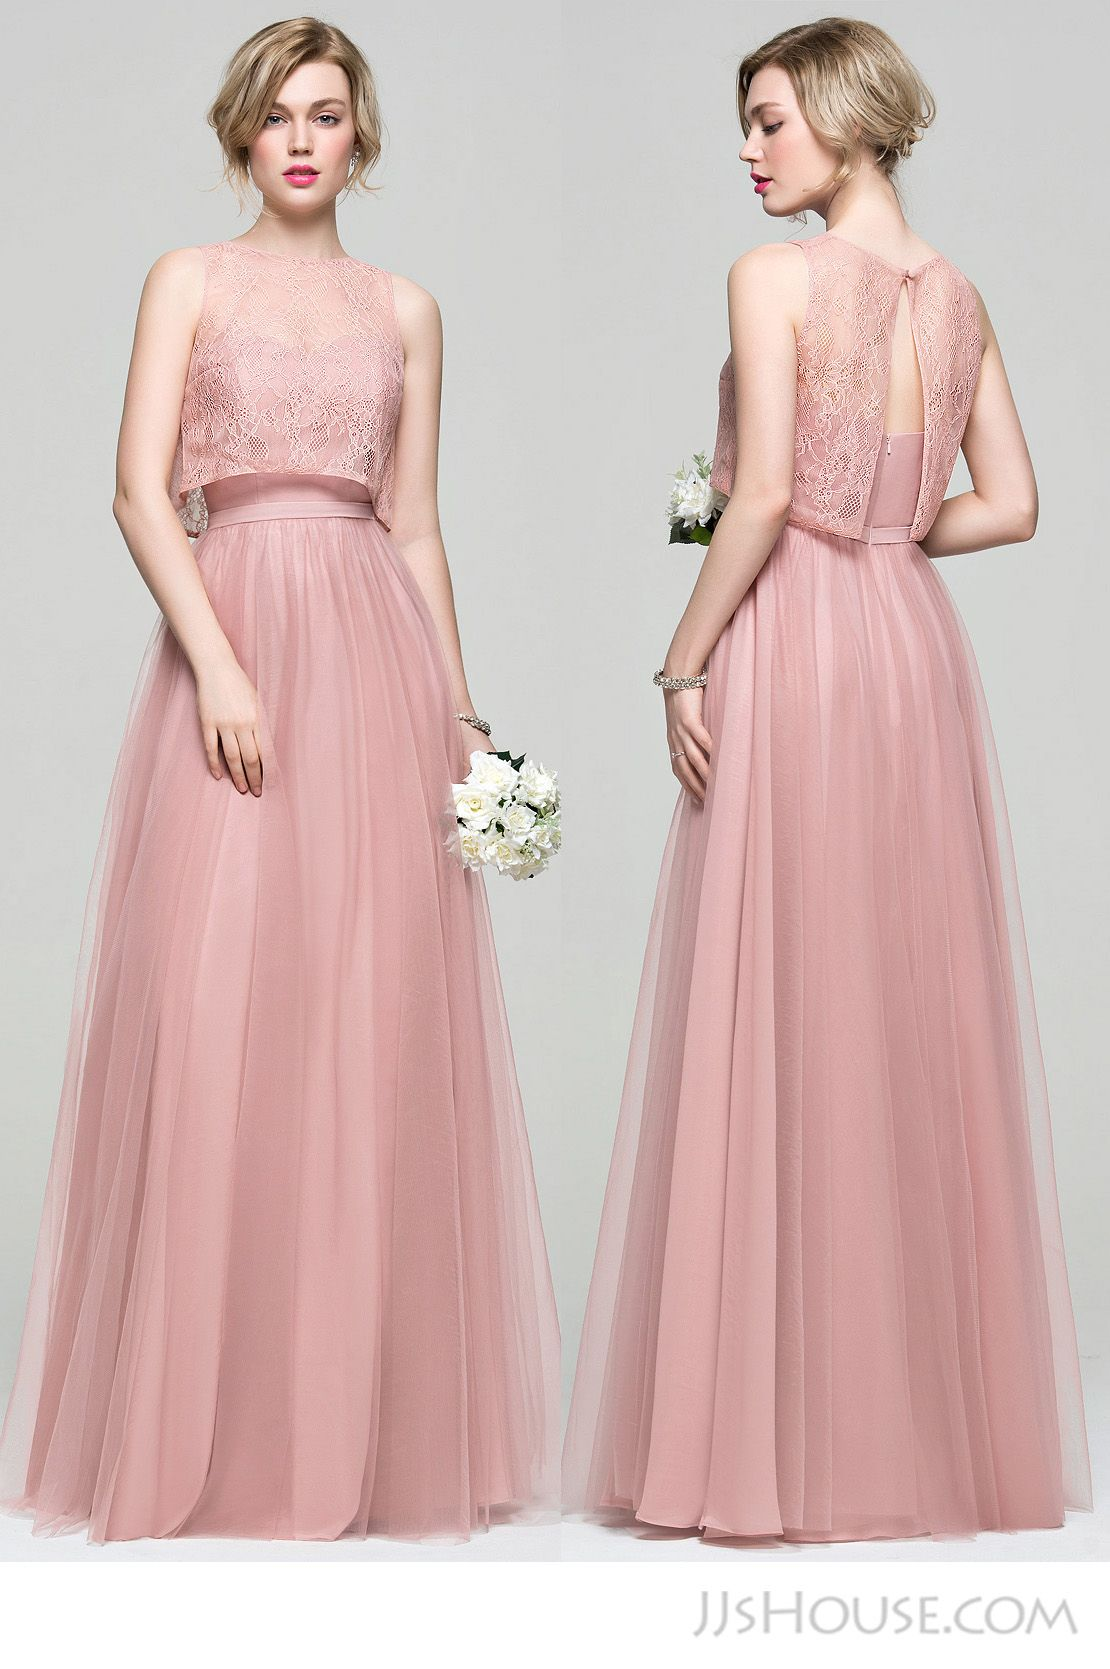 Elegant bridesmaid dress. #JJsHouse | Dress party | Pinterest ...